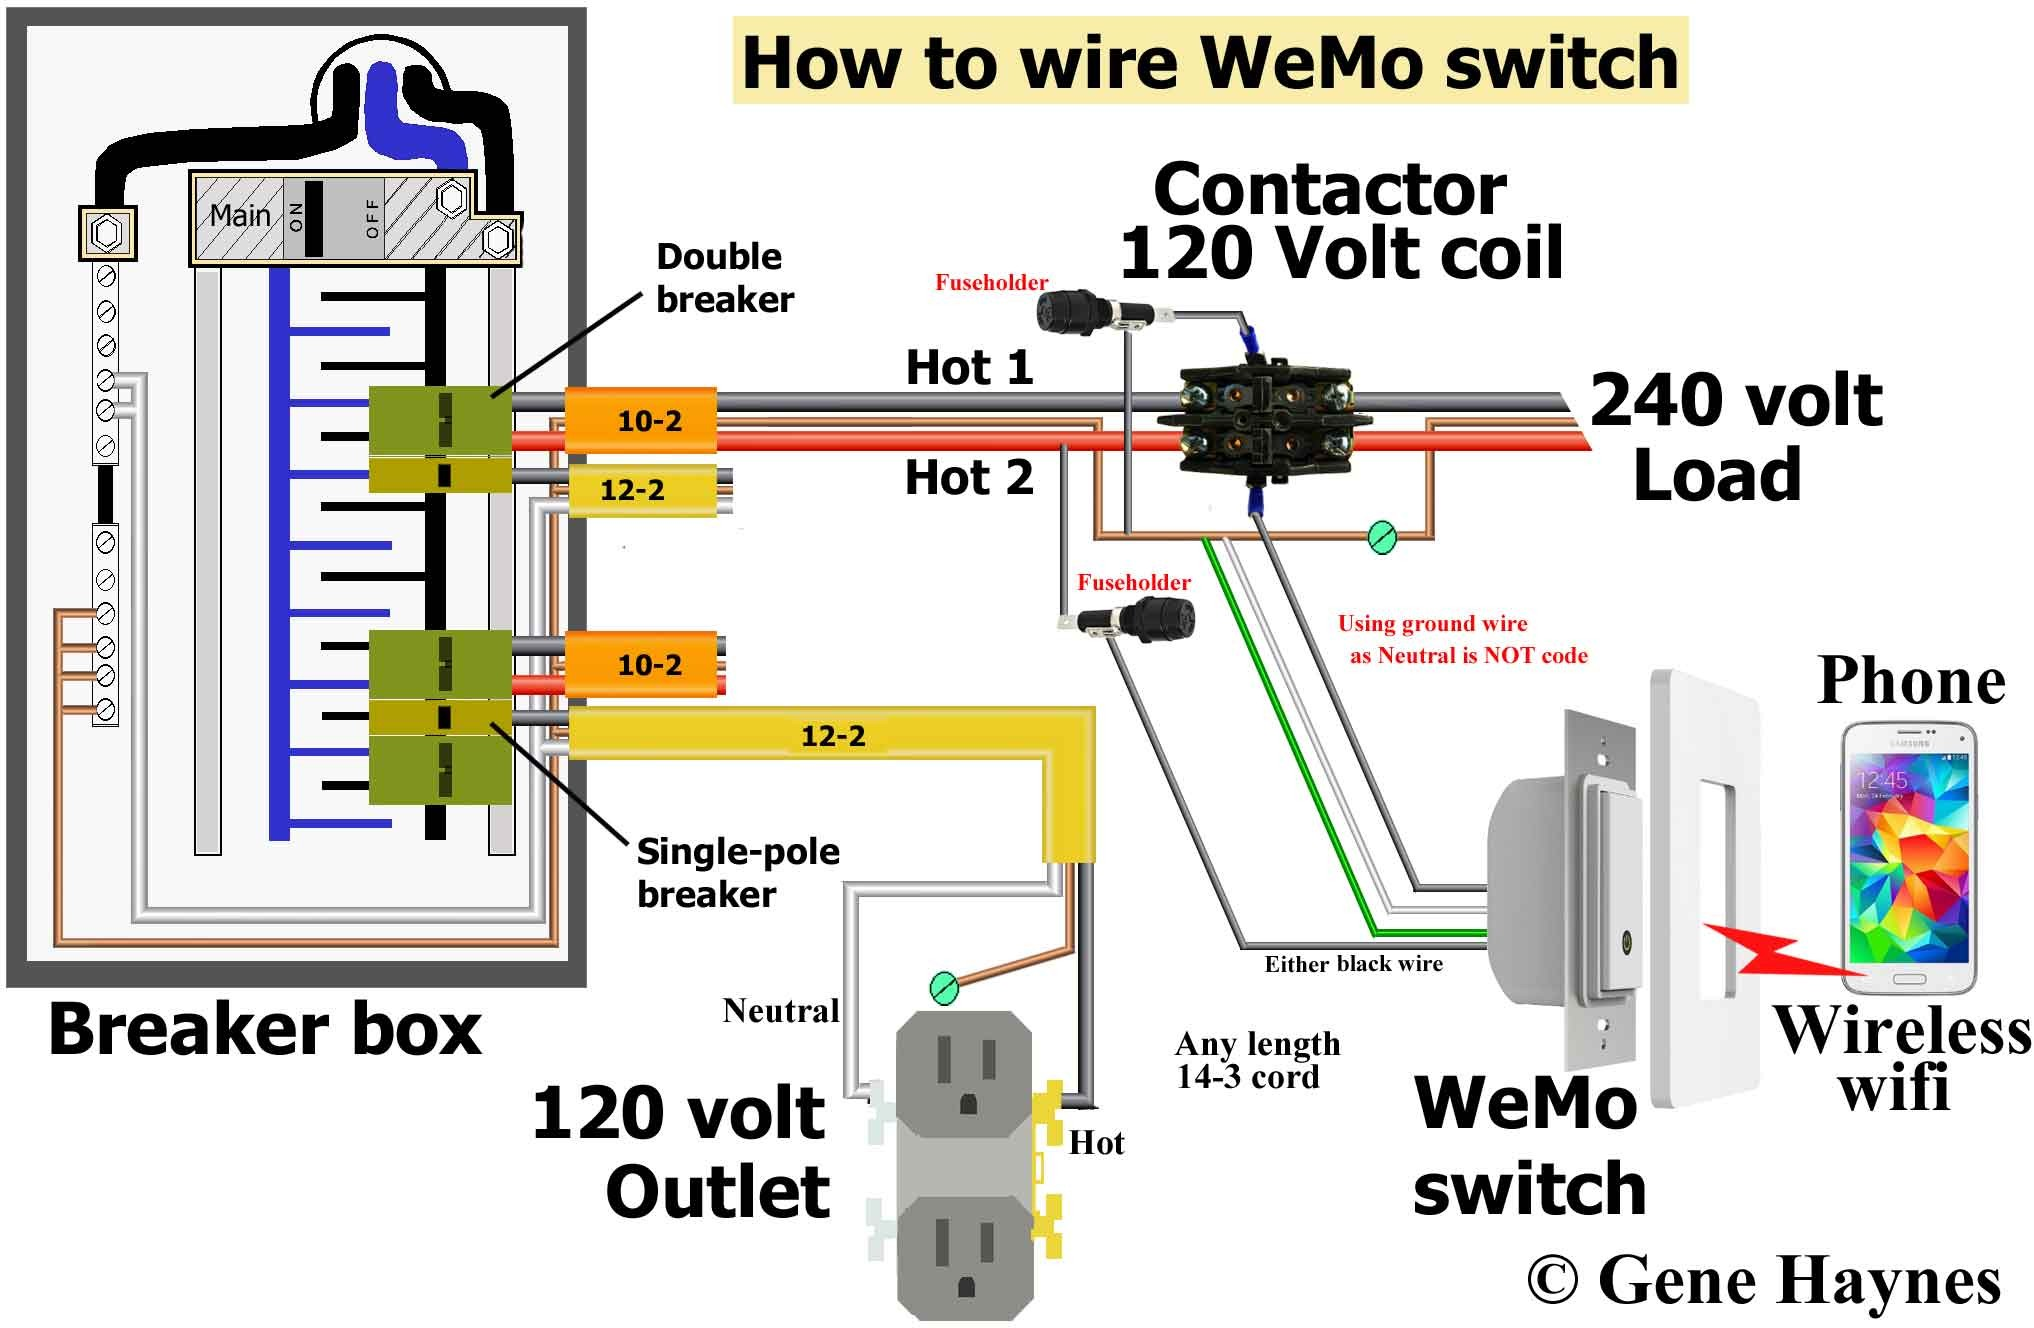 [SCHEMATICS_44OR]  CN_3975] 110 Volt Wiring Colors Wiring Diagram   110v Wire Color Diagrams      Eumqu Embo Vish Ungo Sapebe Mohammedshrine Librar Wiring 101